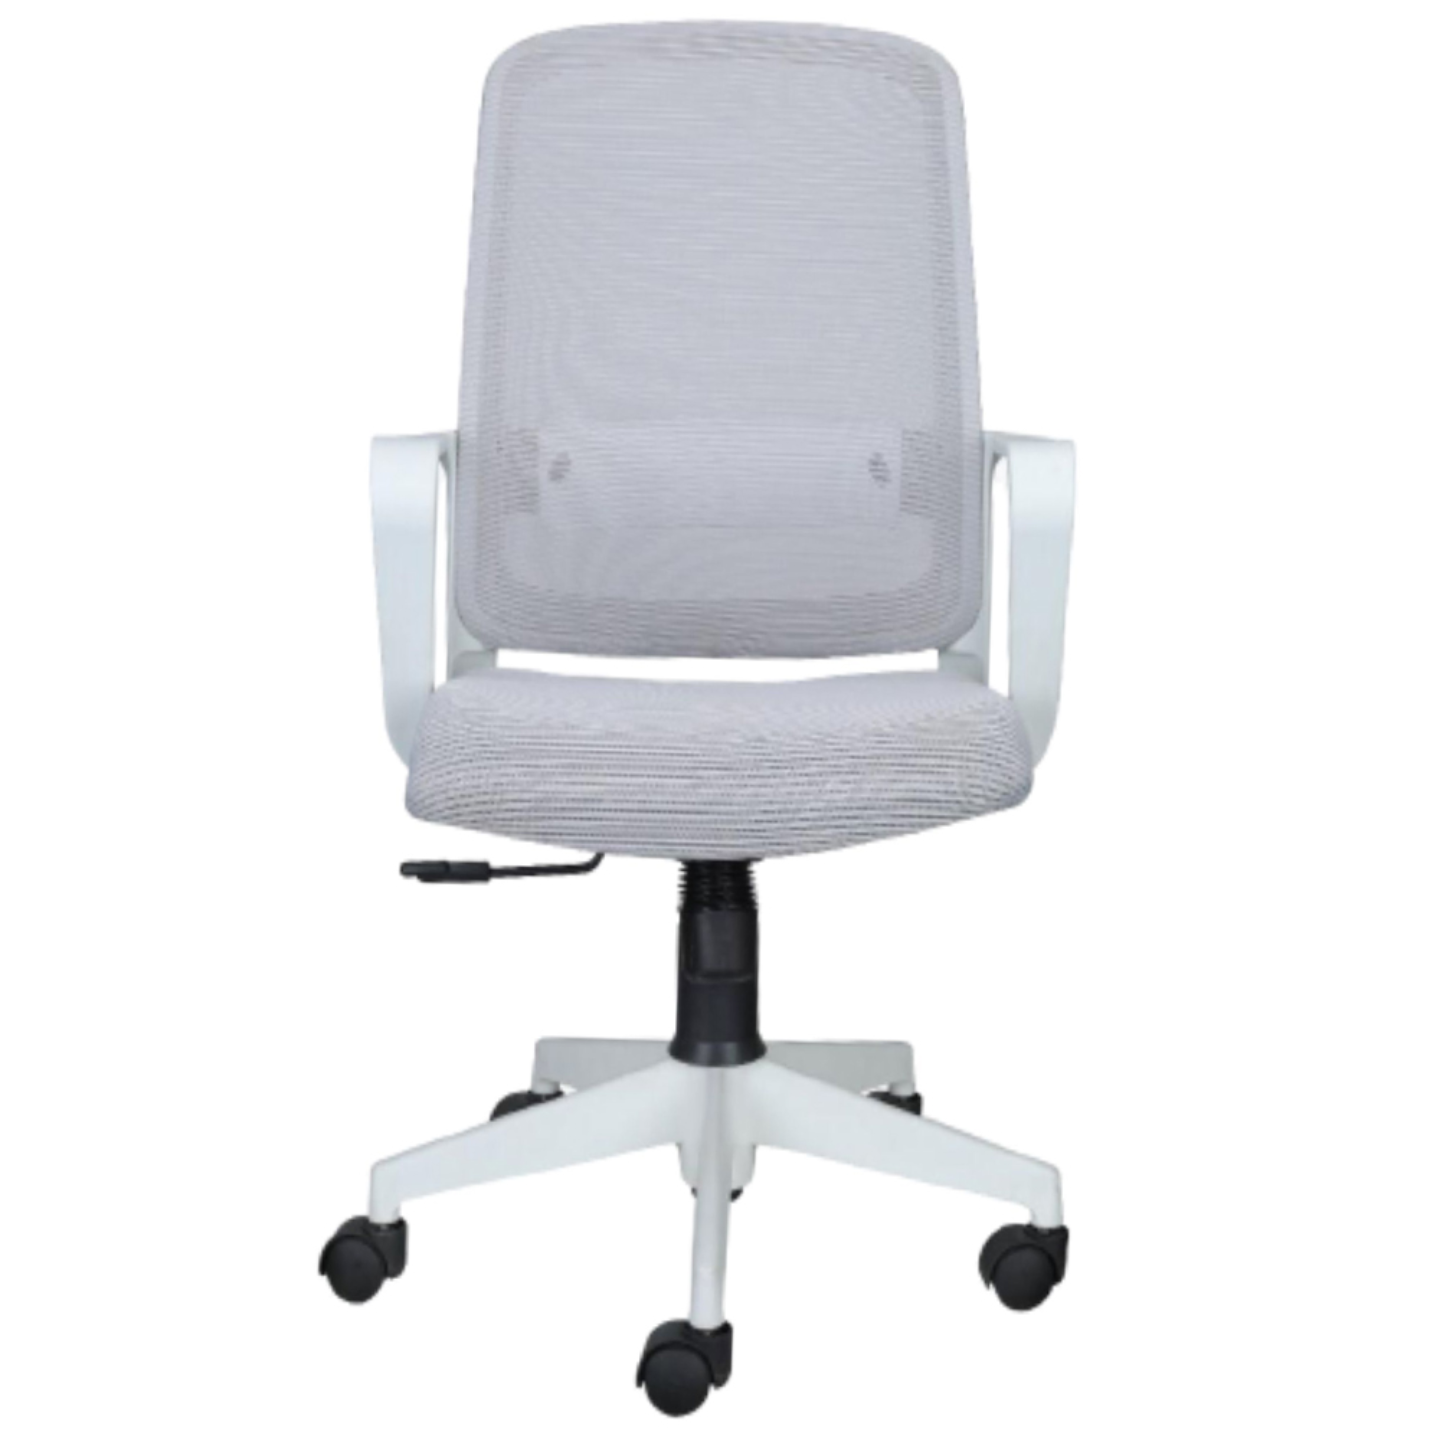 Low Back Office Chair Jane (W) LB